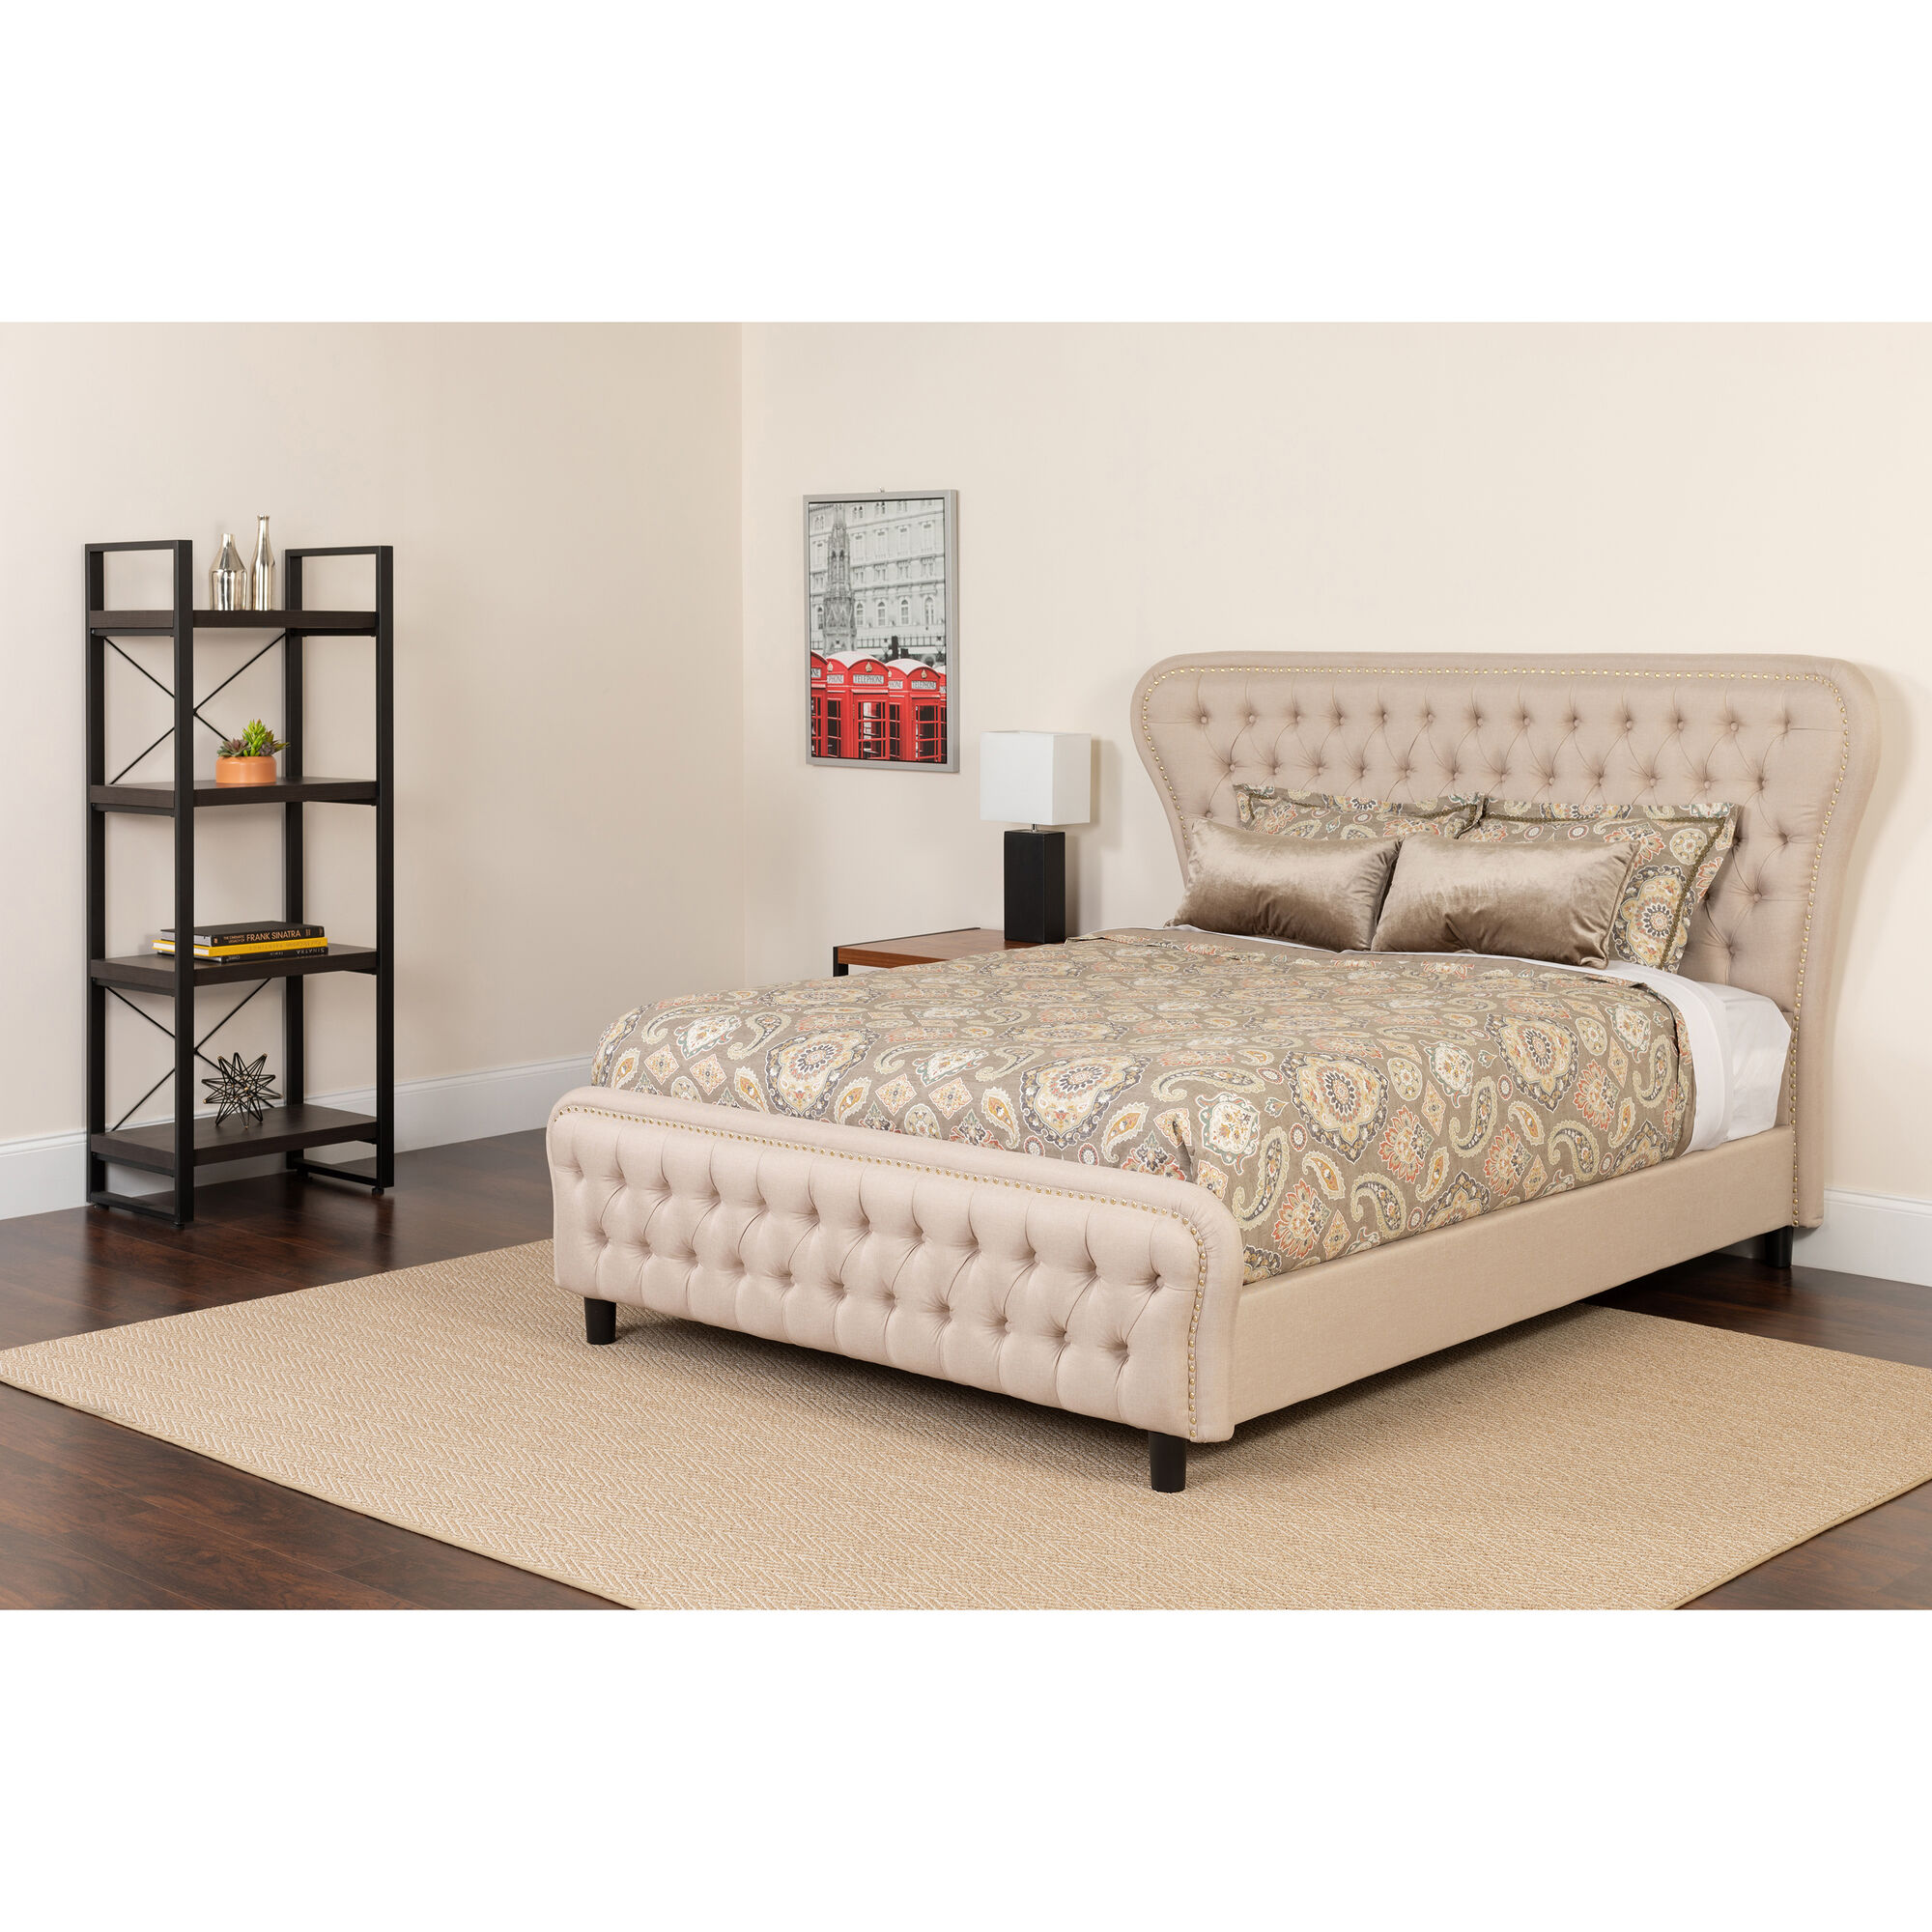 our cartelana tufted upholstered twin size platform bed in beige fabric and gold accent nail. Black Bedroom Furniture Sets. Home Design Ideas